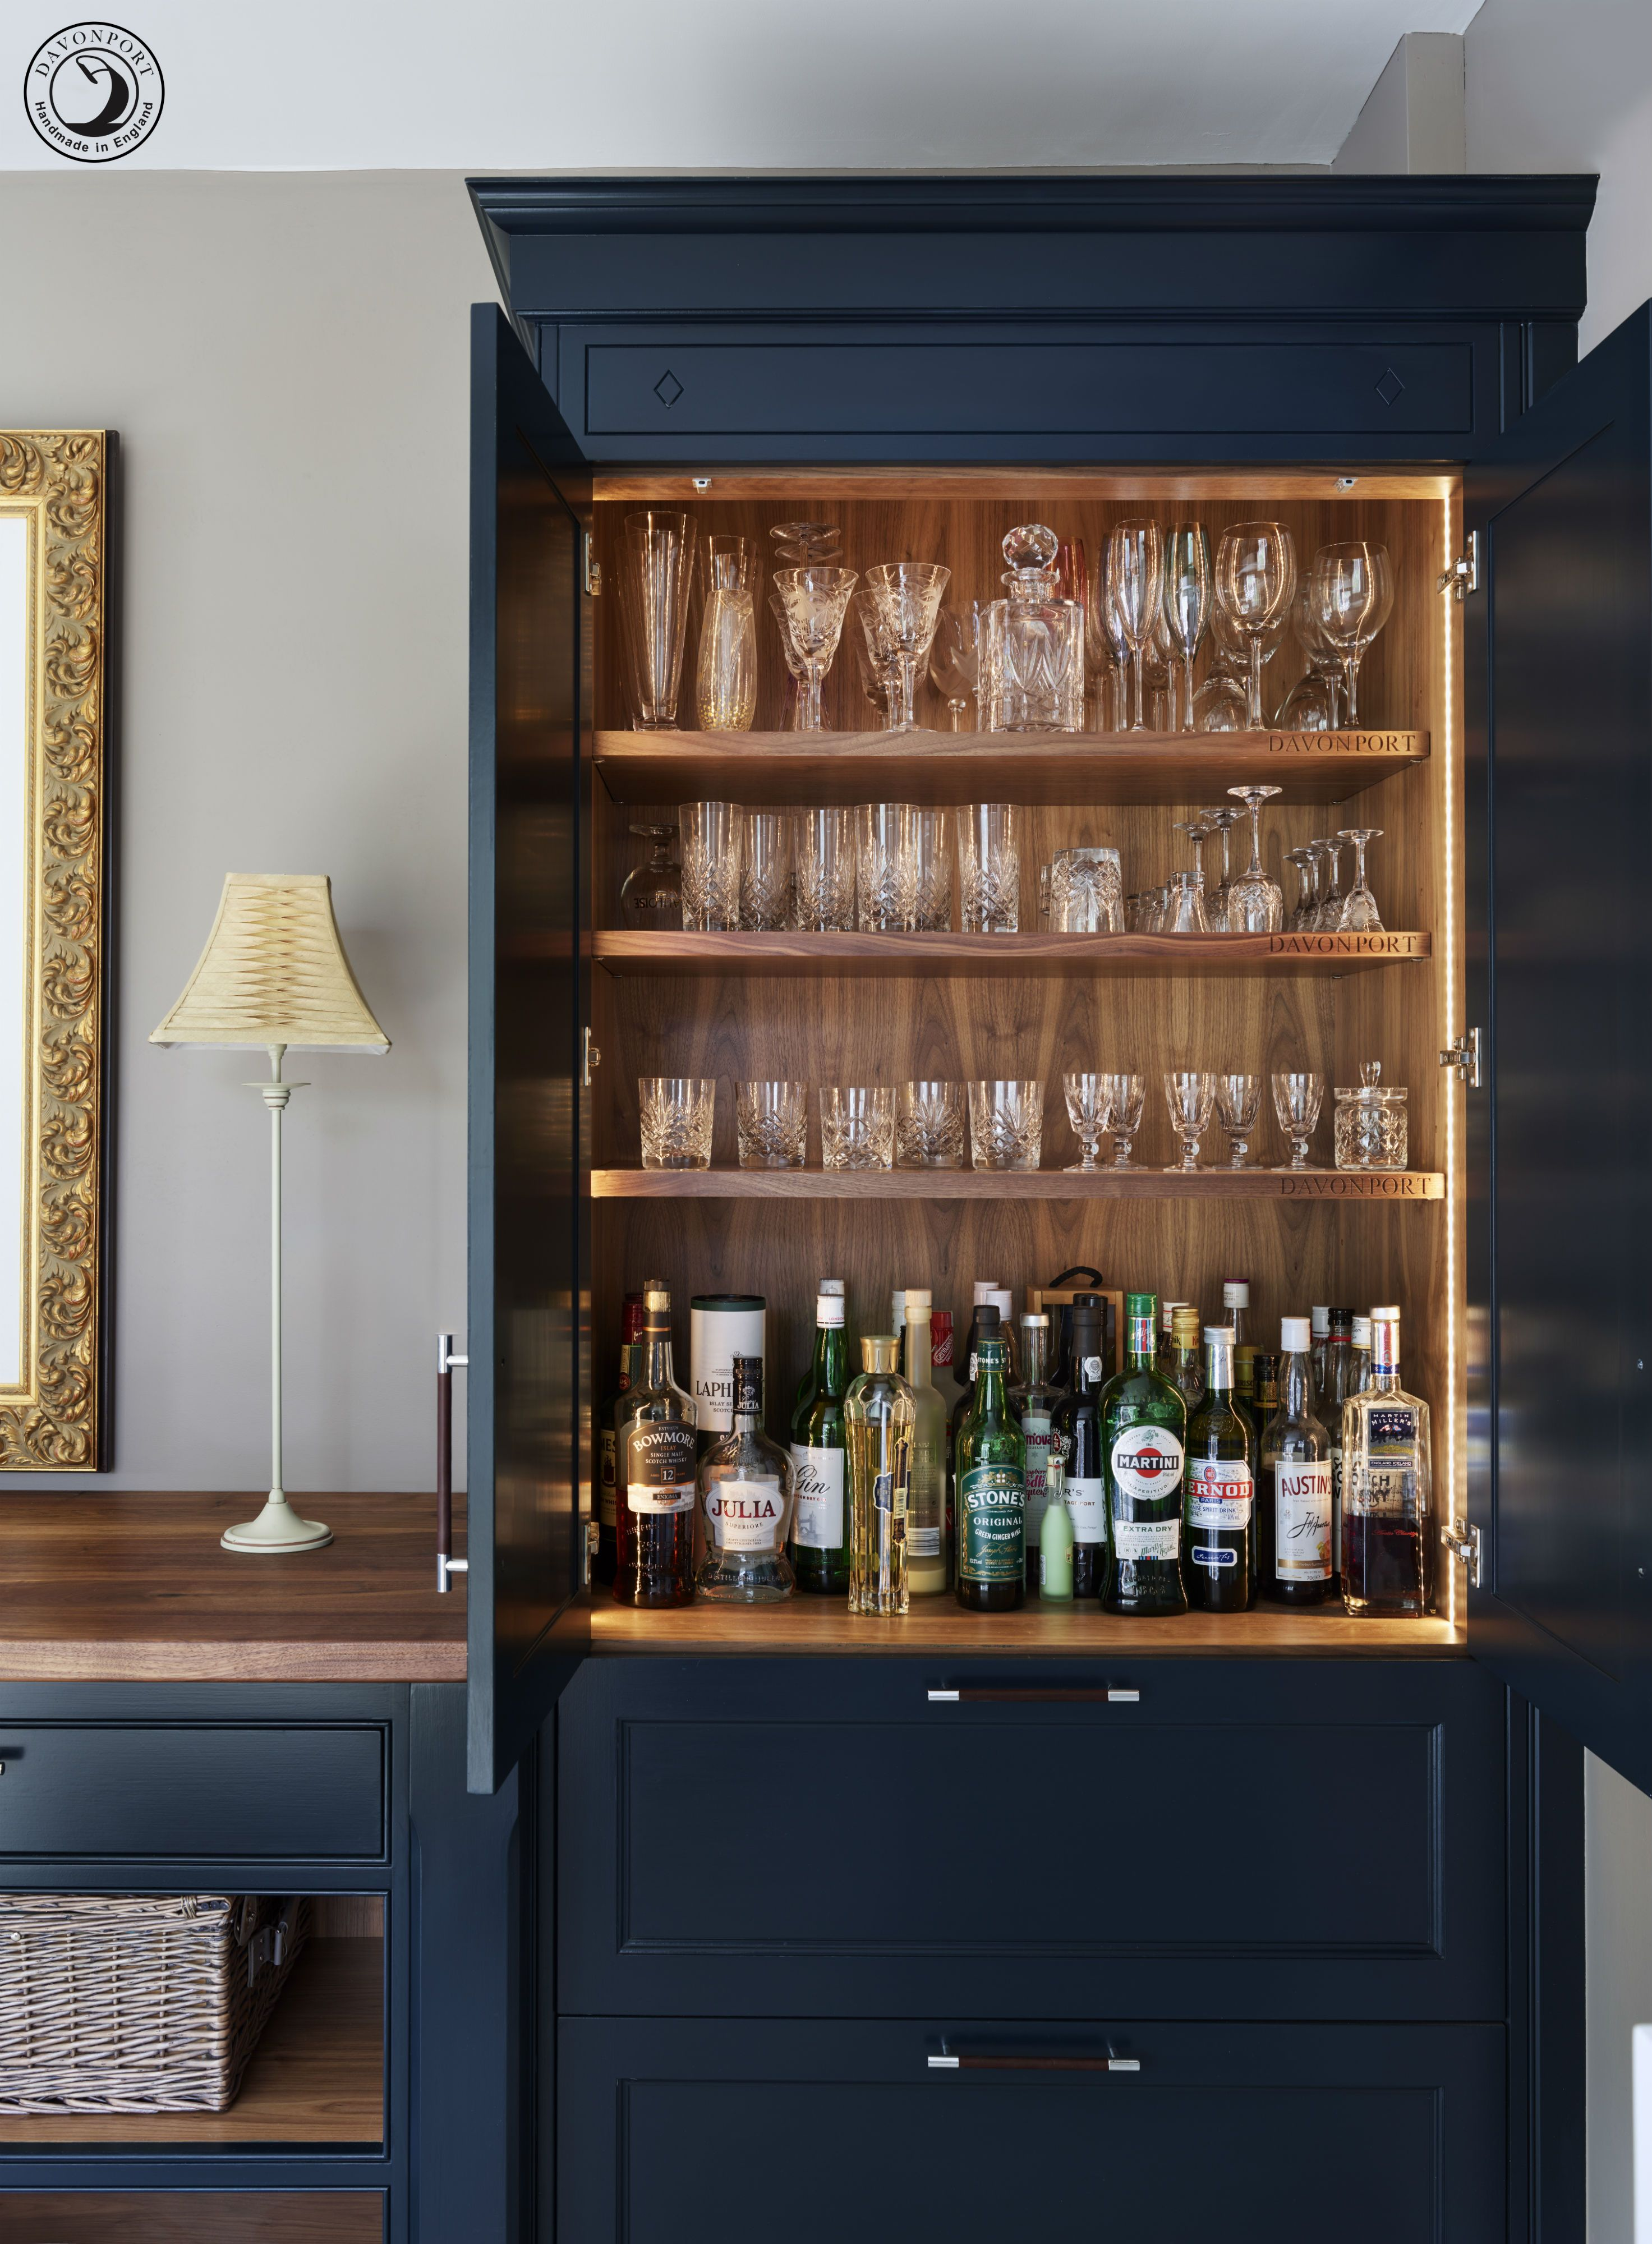 This Drinks Cupboard Is The Ultimate Entertaining Kitchen Feature The Perfect Spot To Prepare A Friday Night D Home Bar Designs Bars For Home Home Bar Design